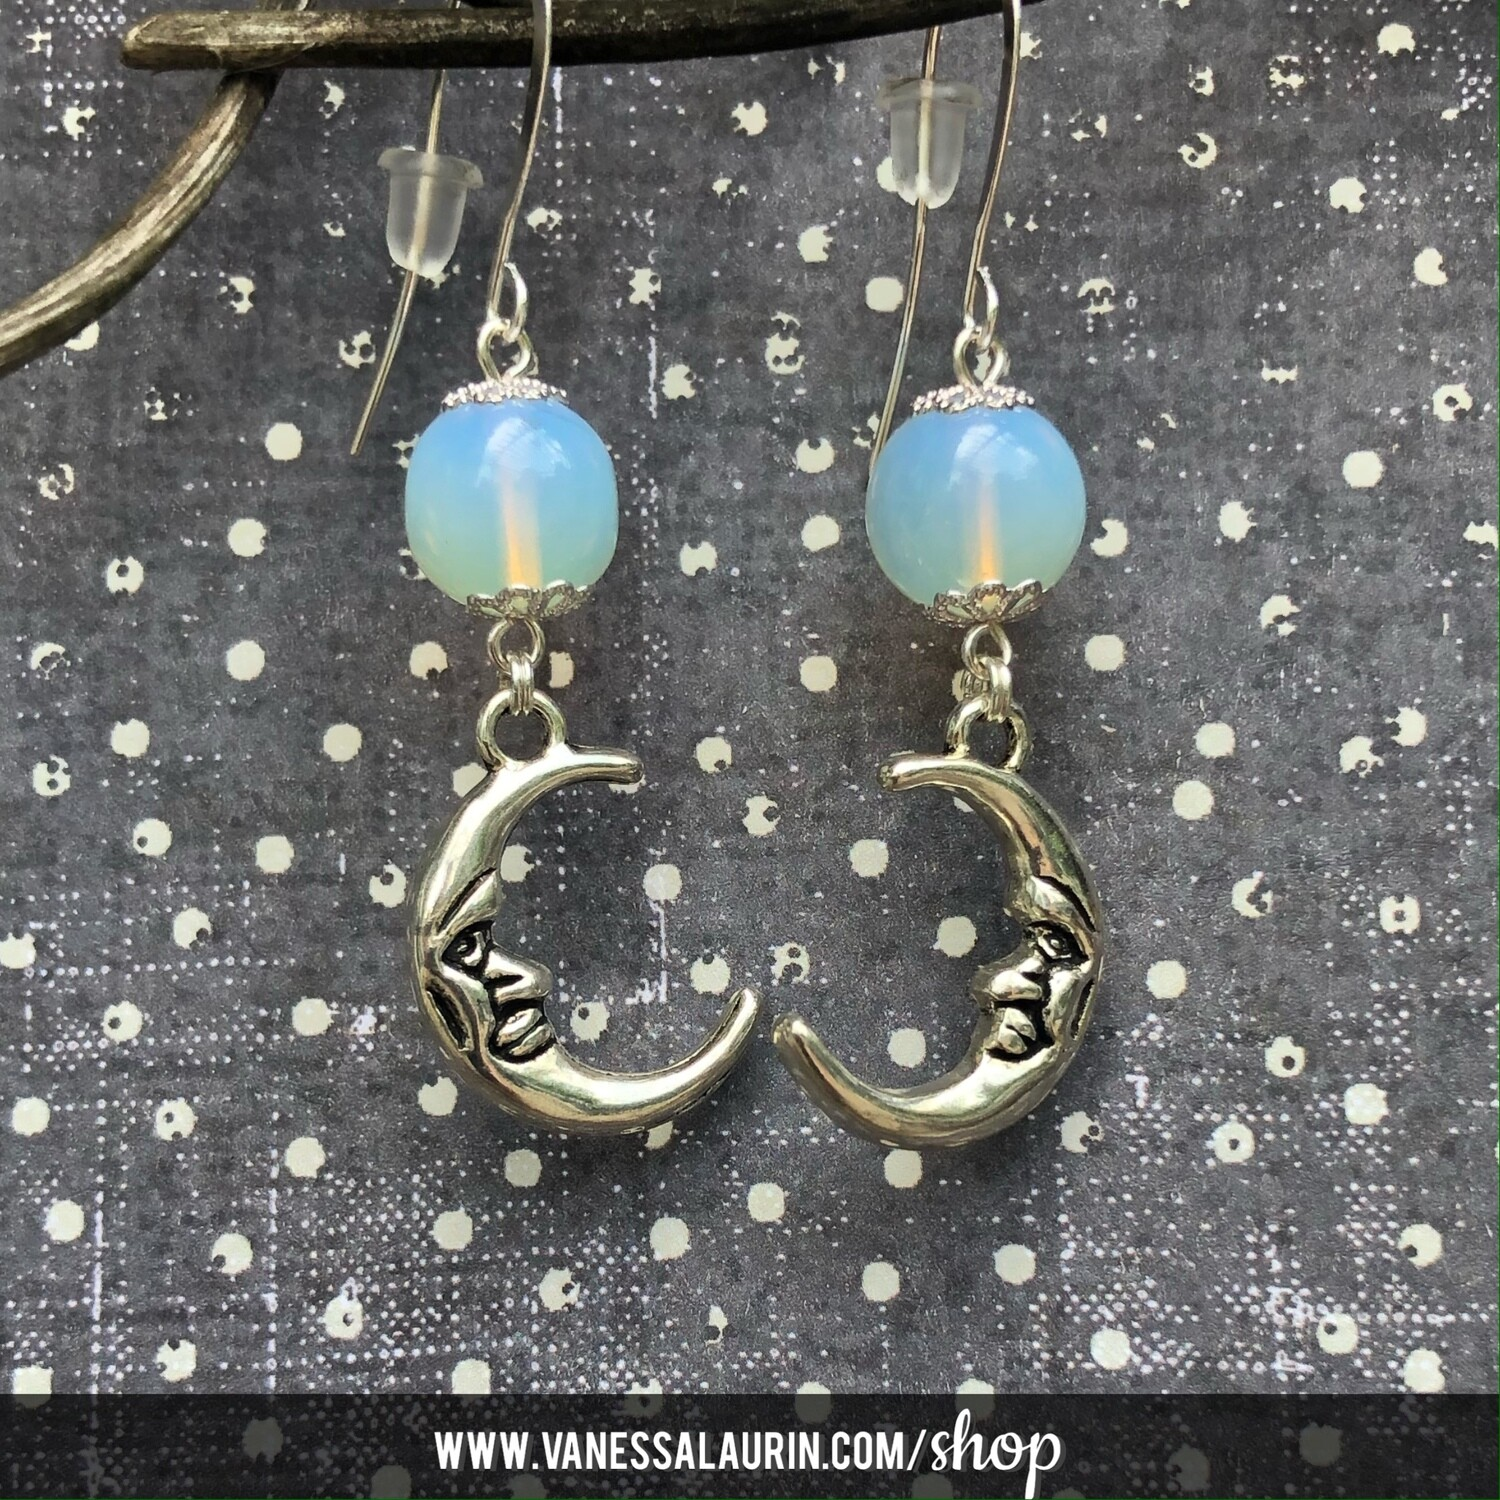 Moonbeams Collection: Opalite crescent moon earrings